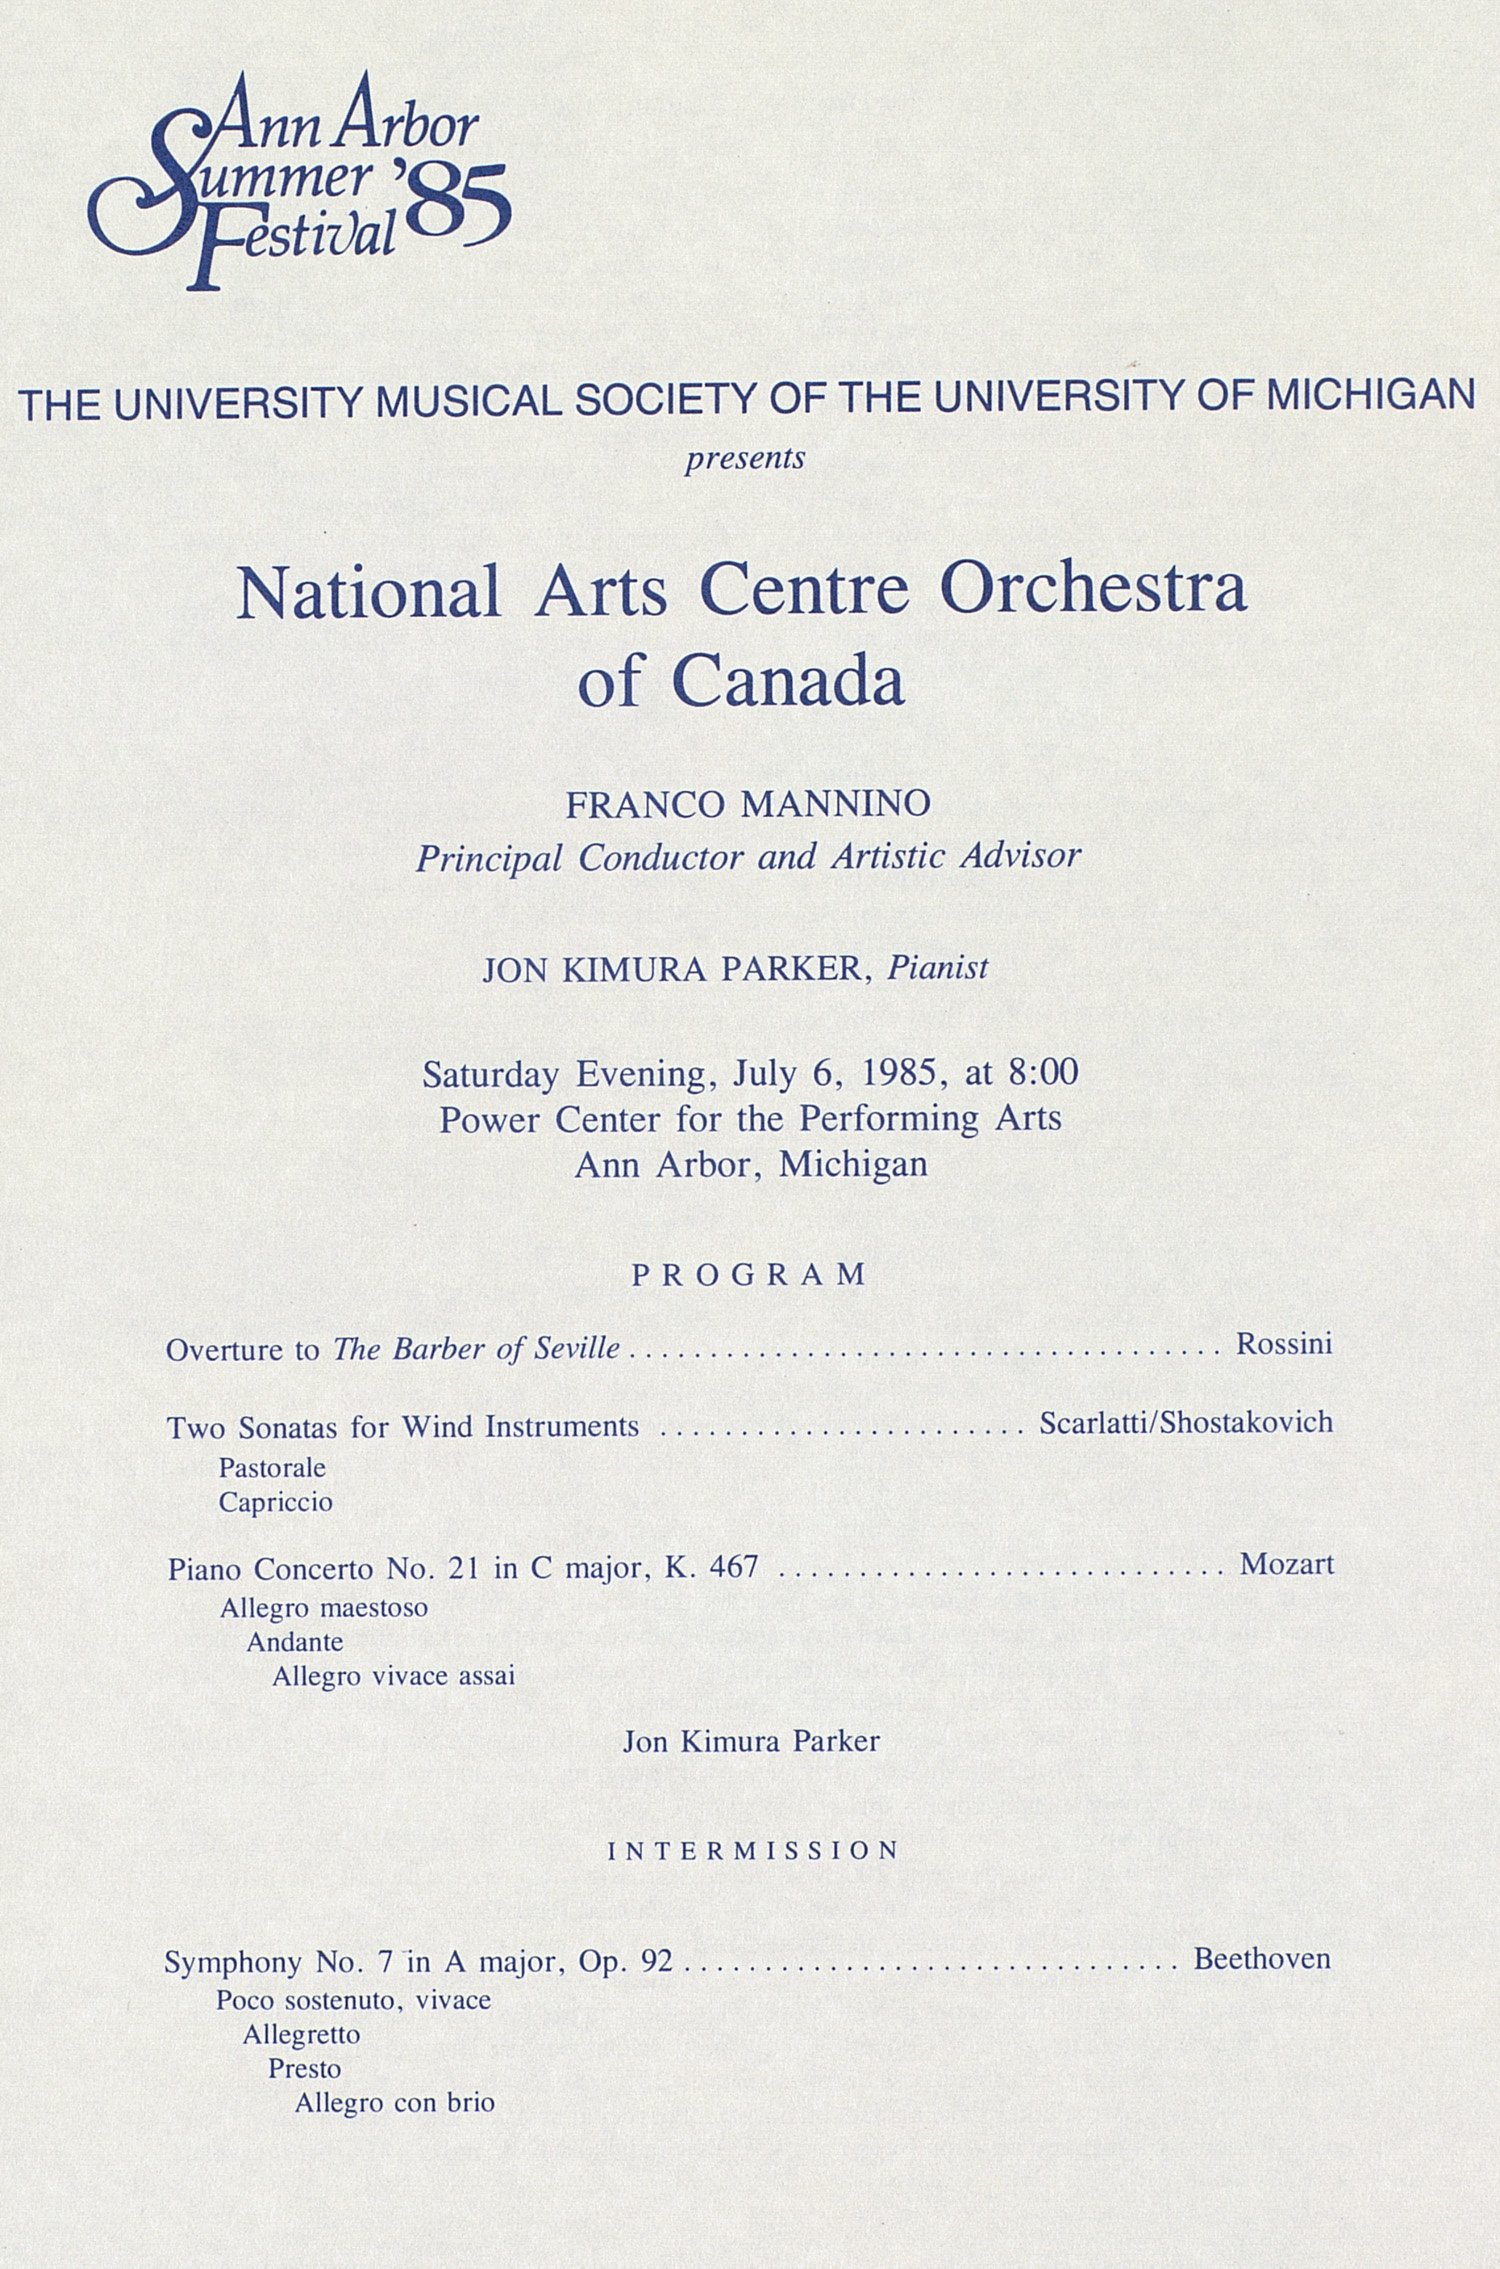 UMS Concert Program, July 6, 1985: Ann Arbor Summer '85 Festival -- National Arts Centre Orchestra Of Canada image